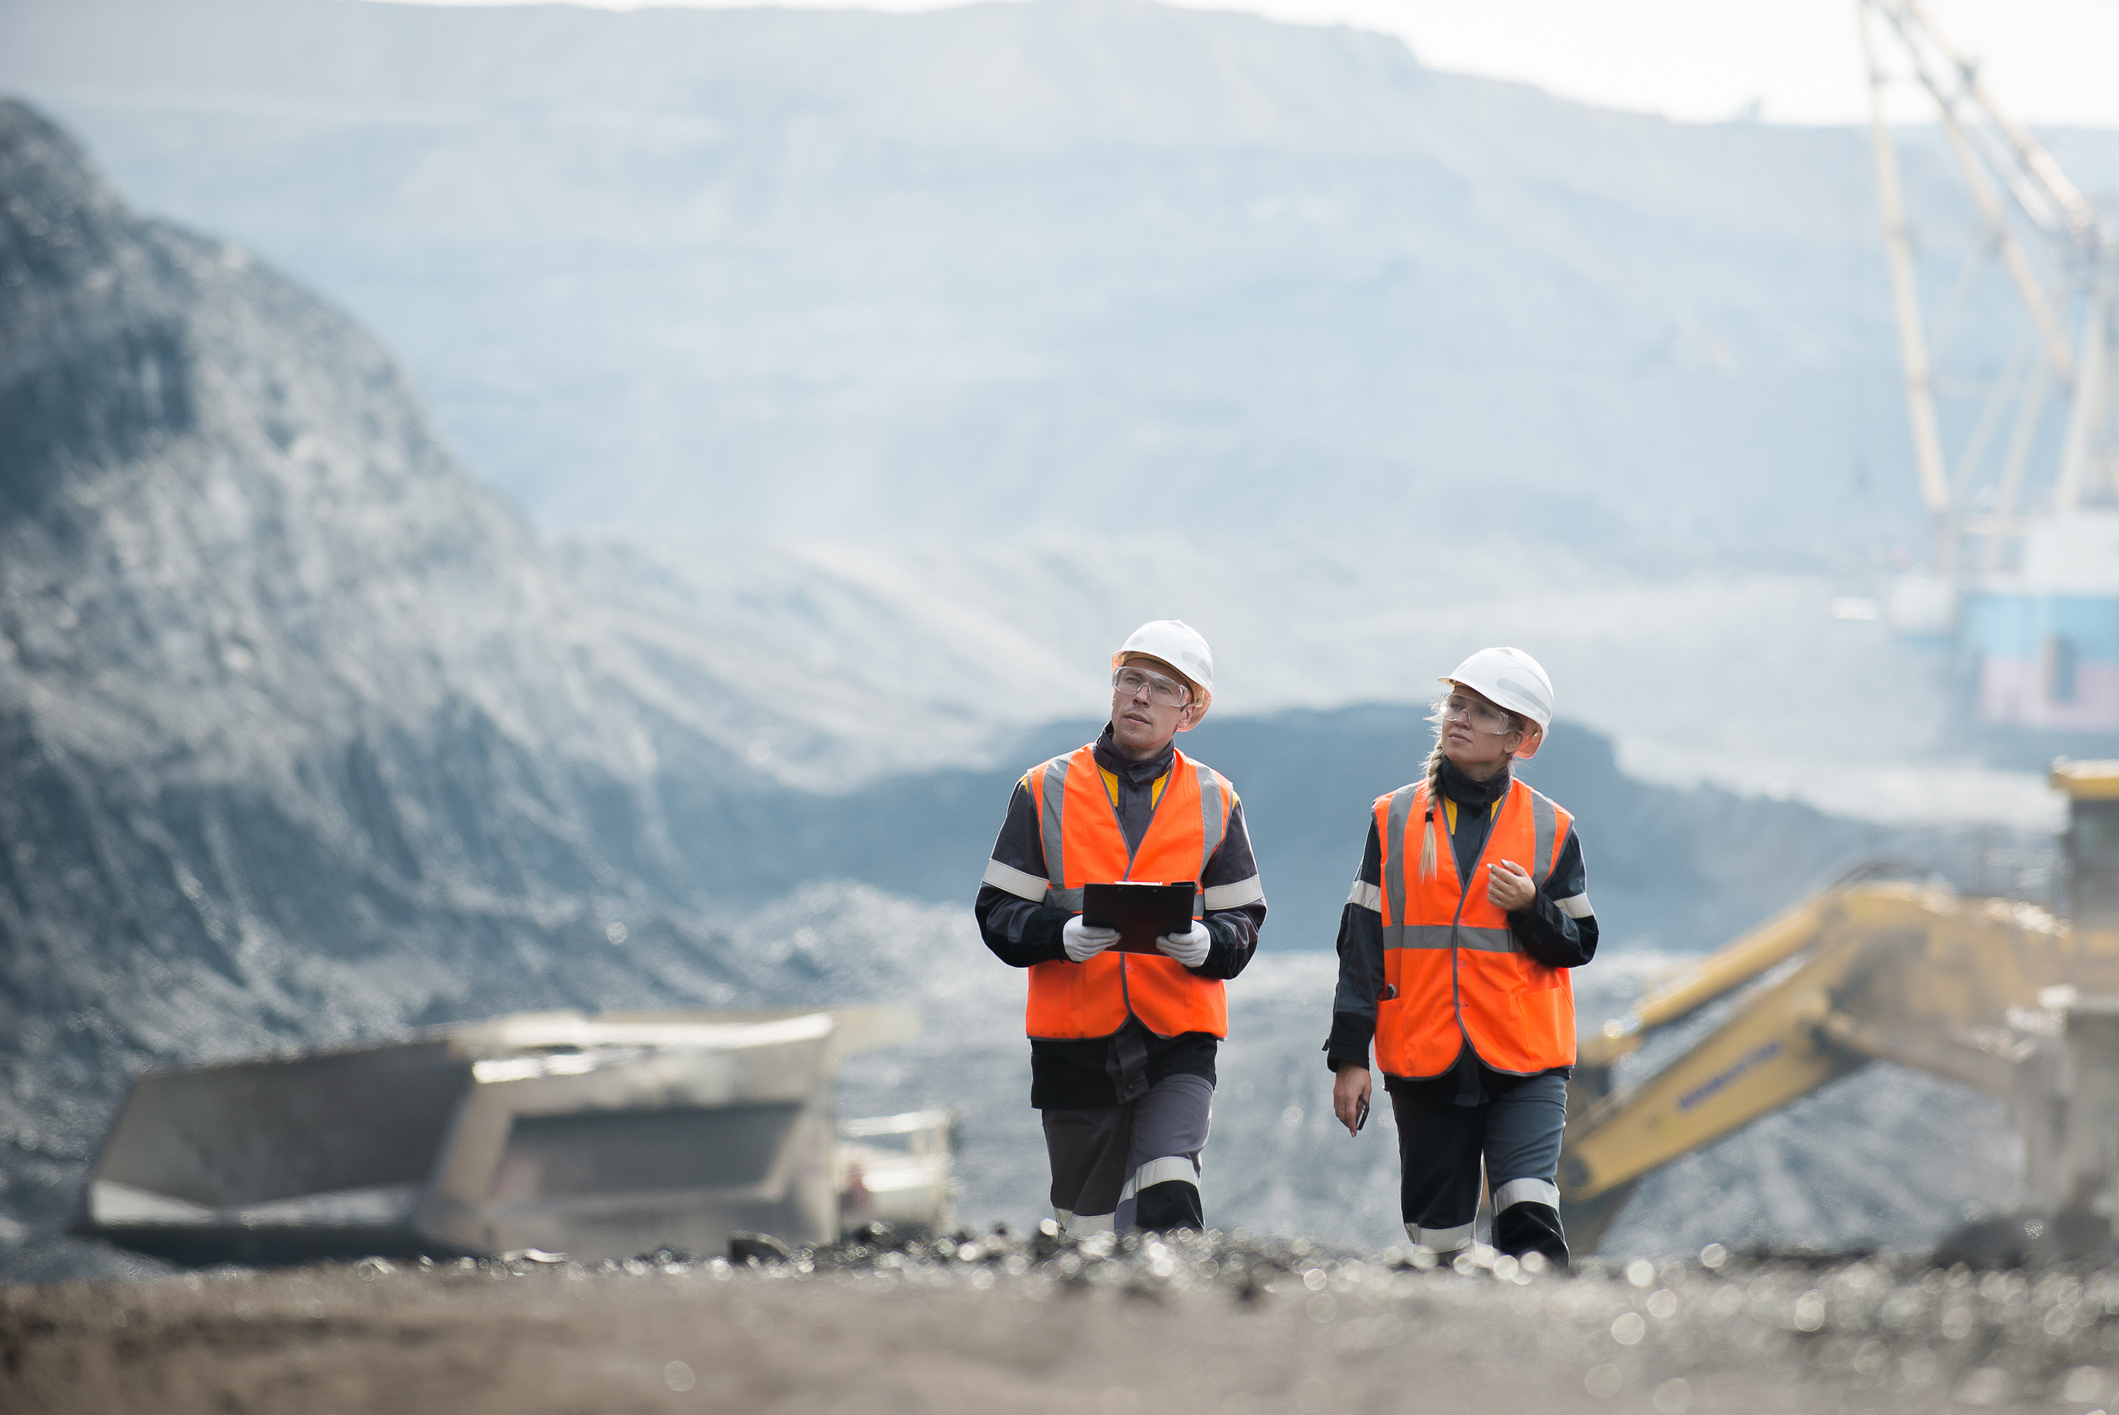 Yancoal: A Holistic, Digital Mission to Manage Mining Industry Risk